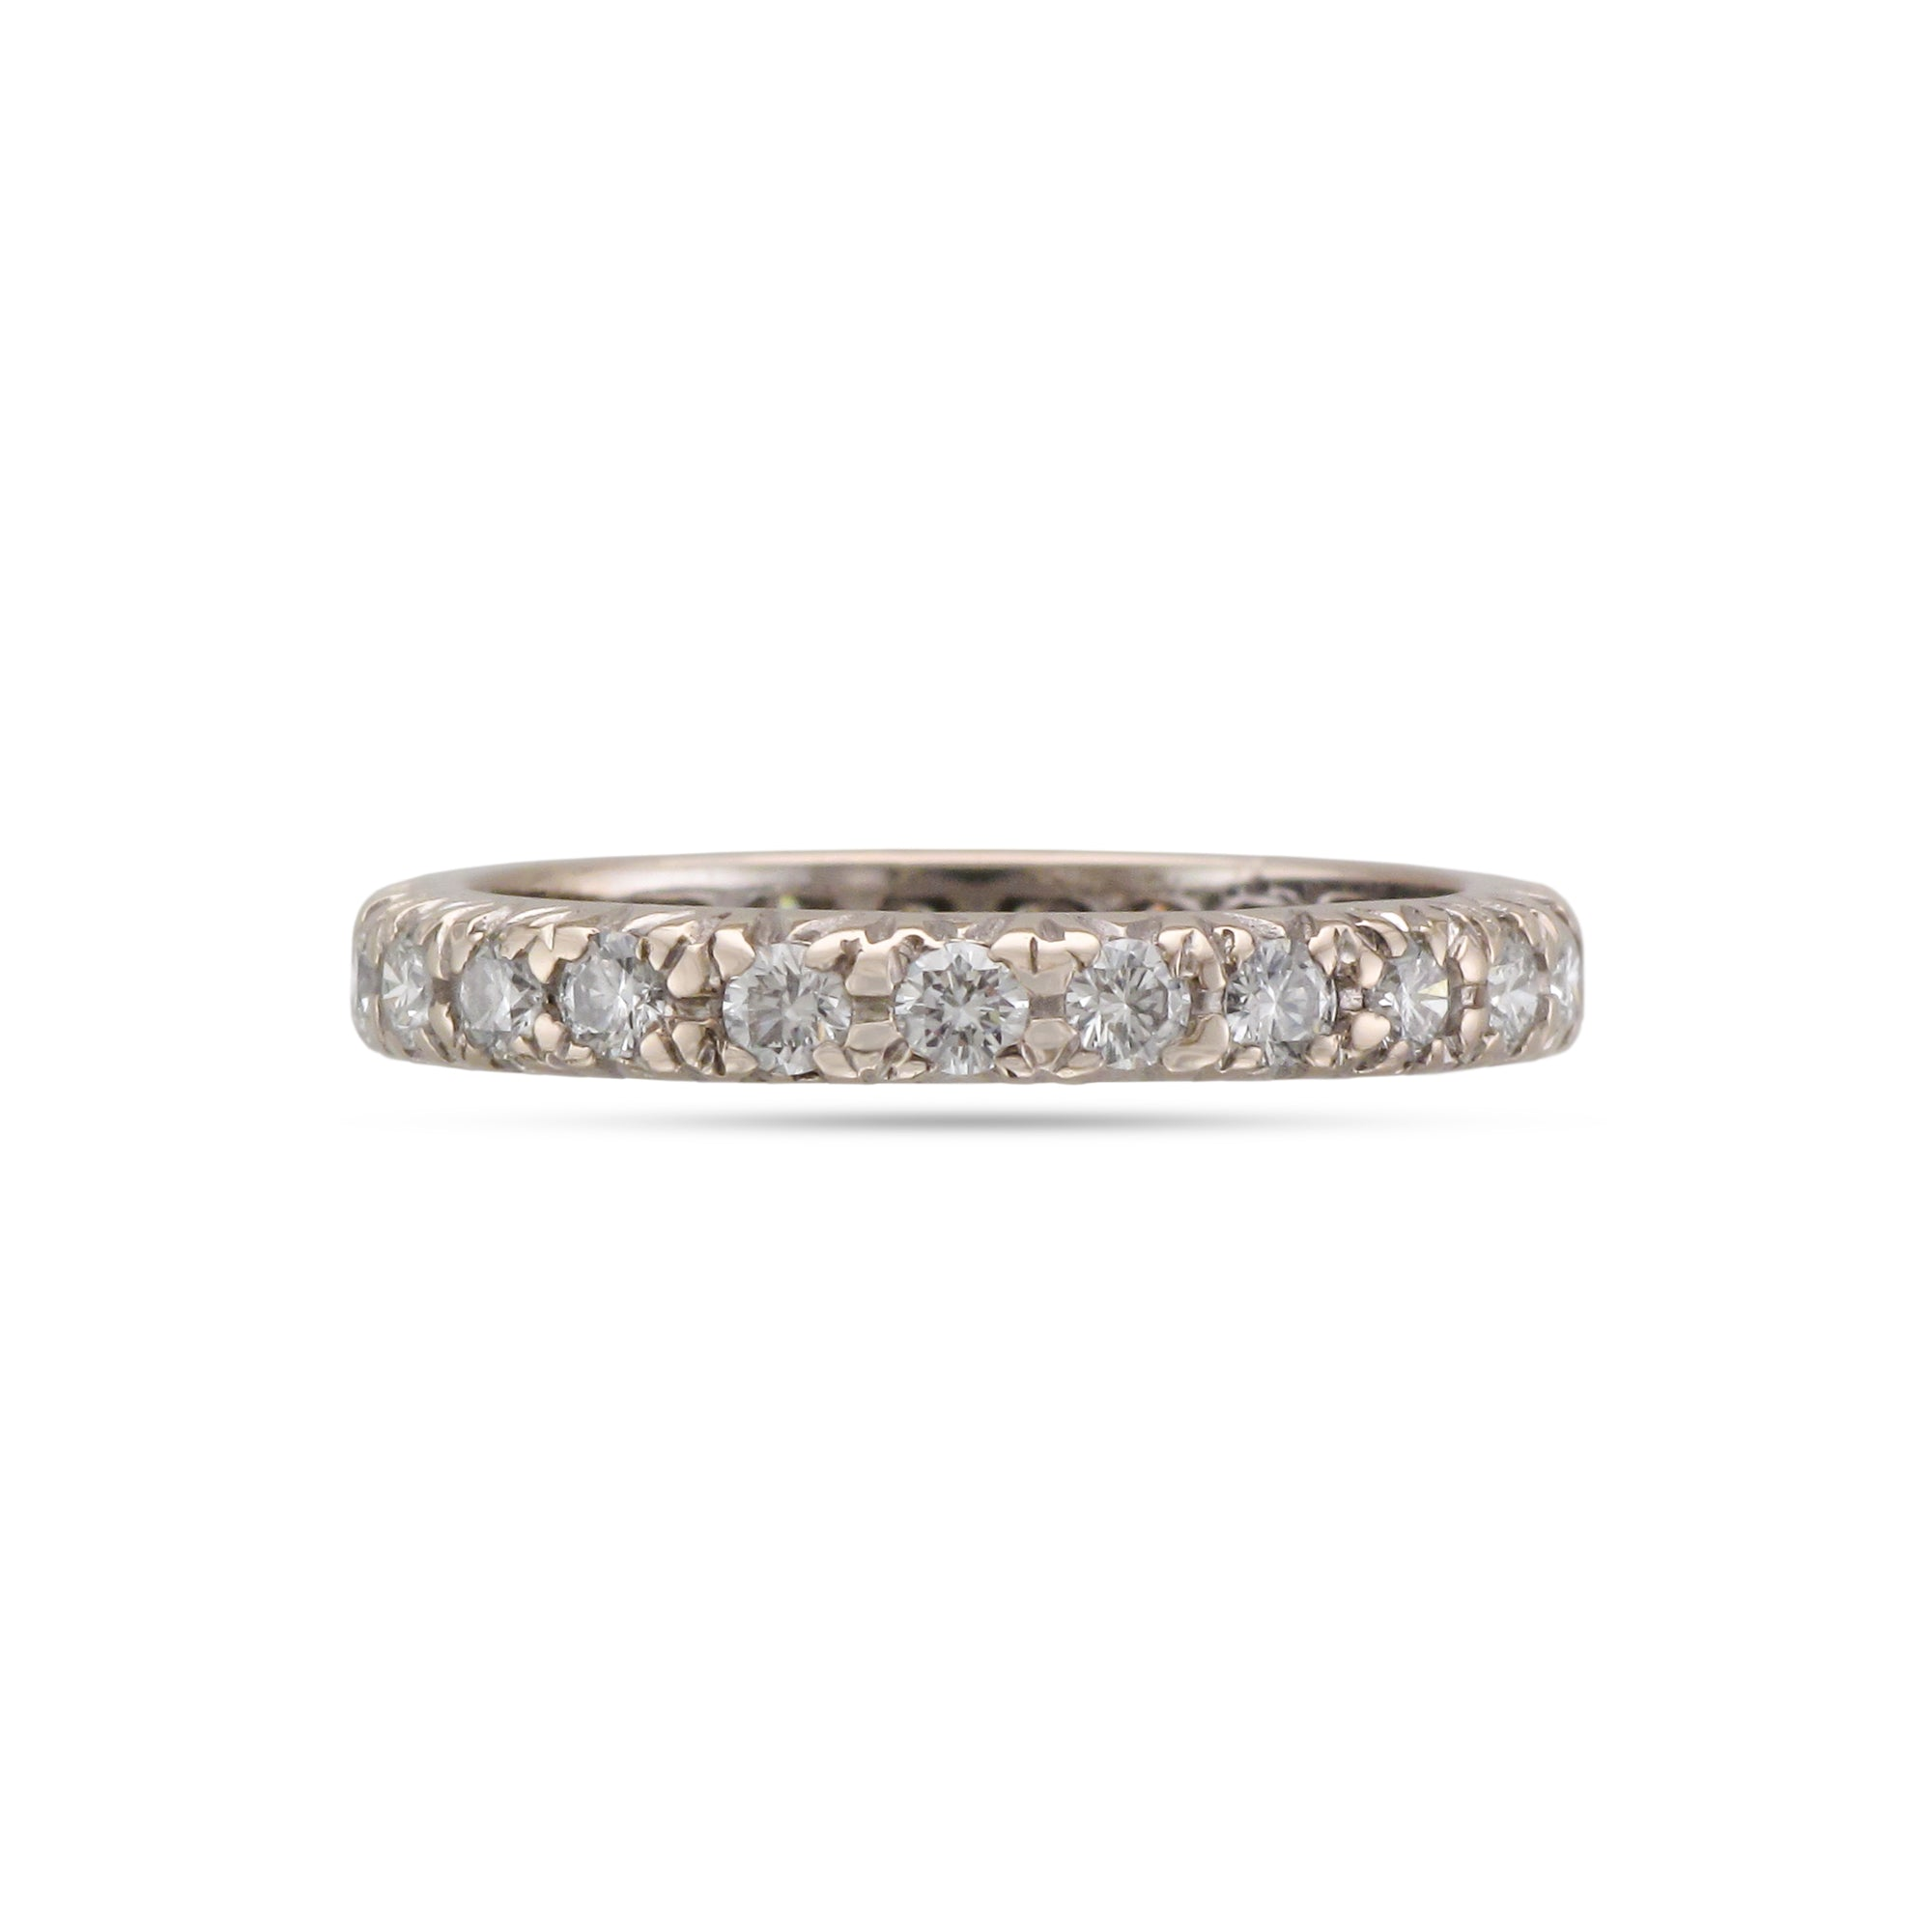 Vintage 18ct White Gold Full Diamond Eternity Ring